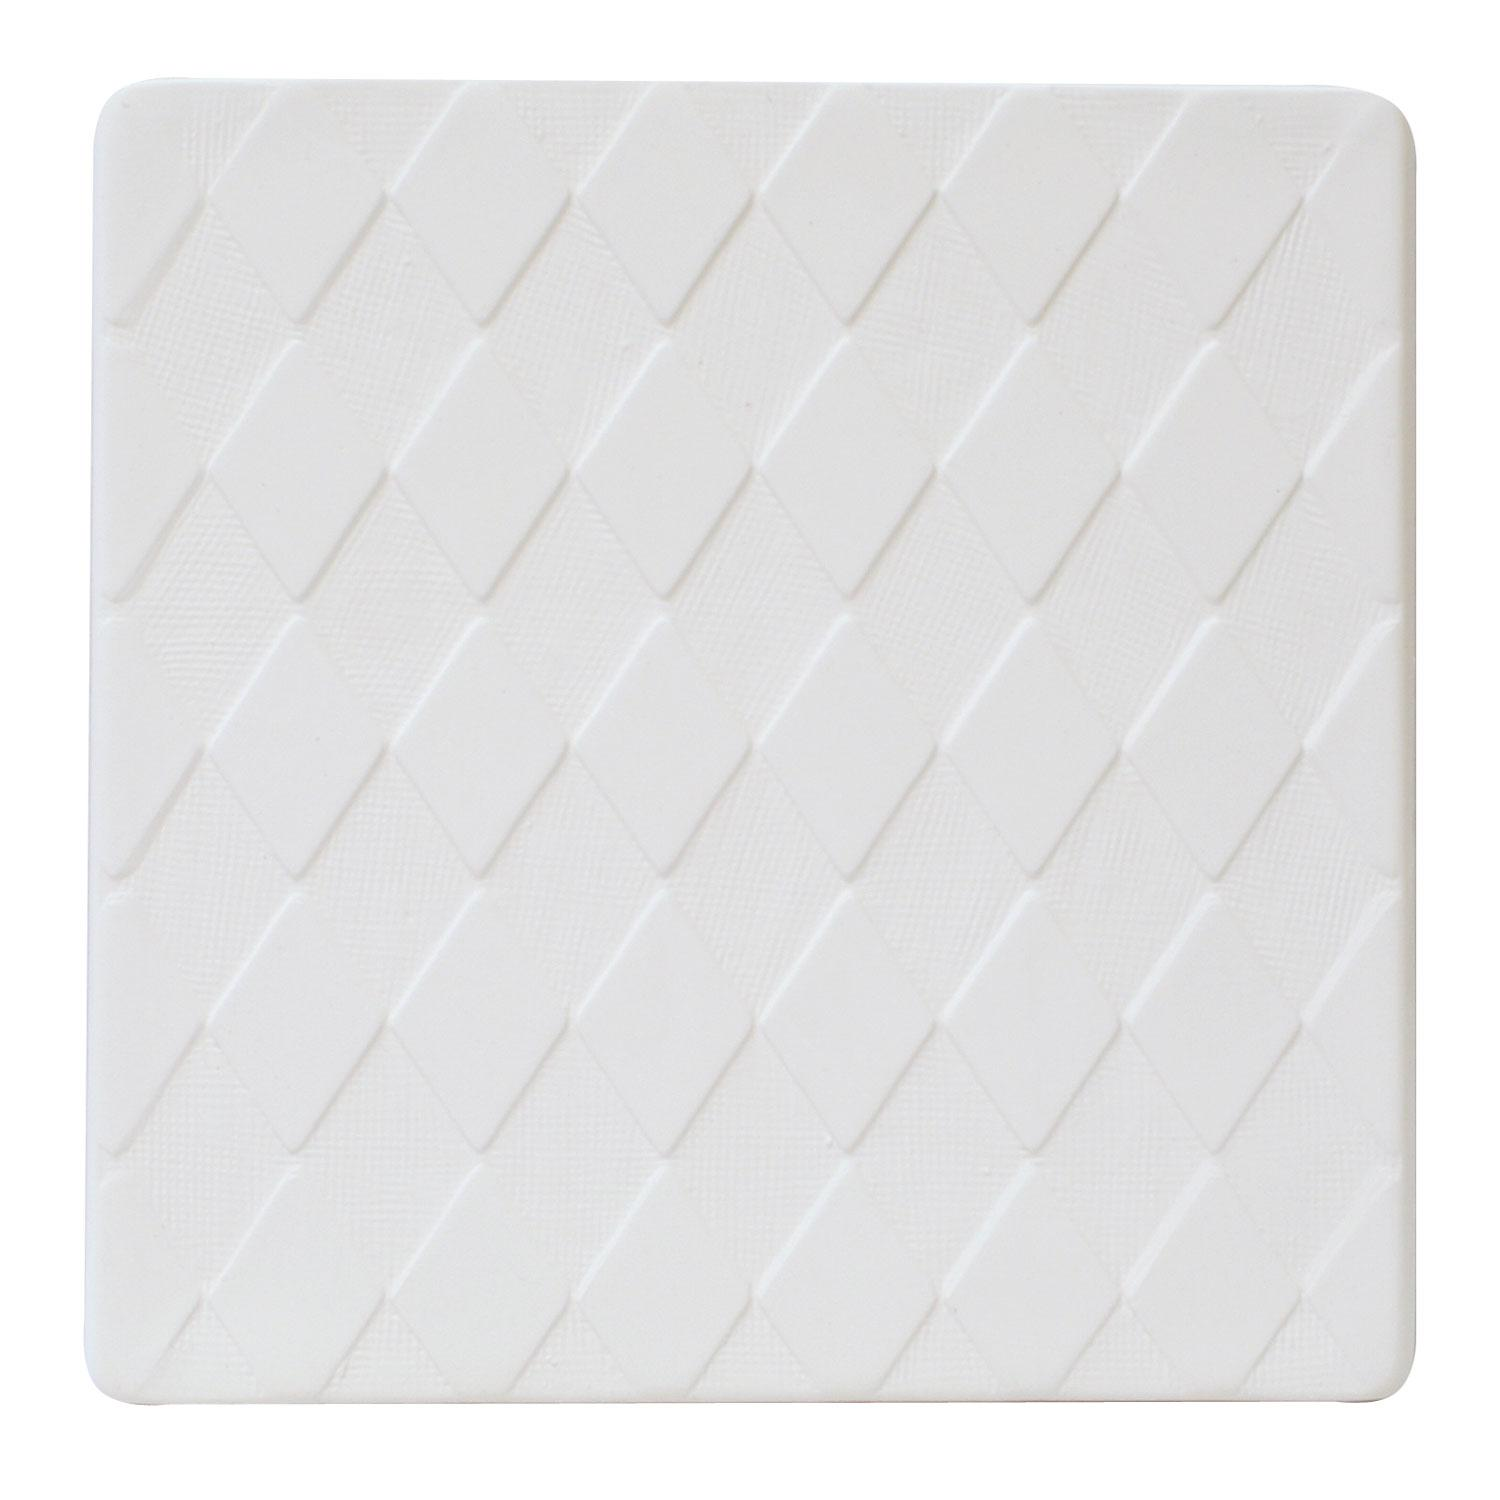 Harlequin Ceramic Texture Tile Mold